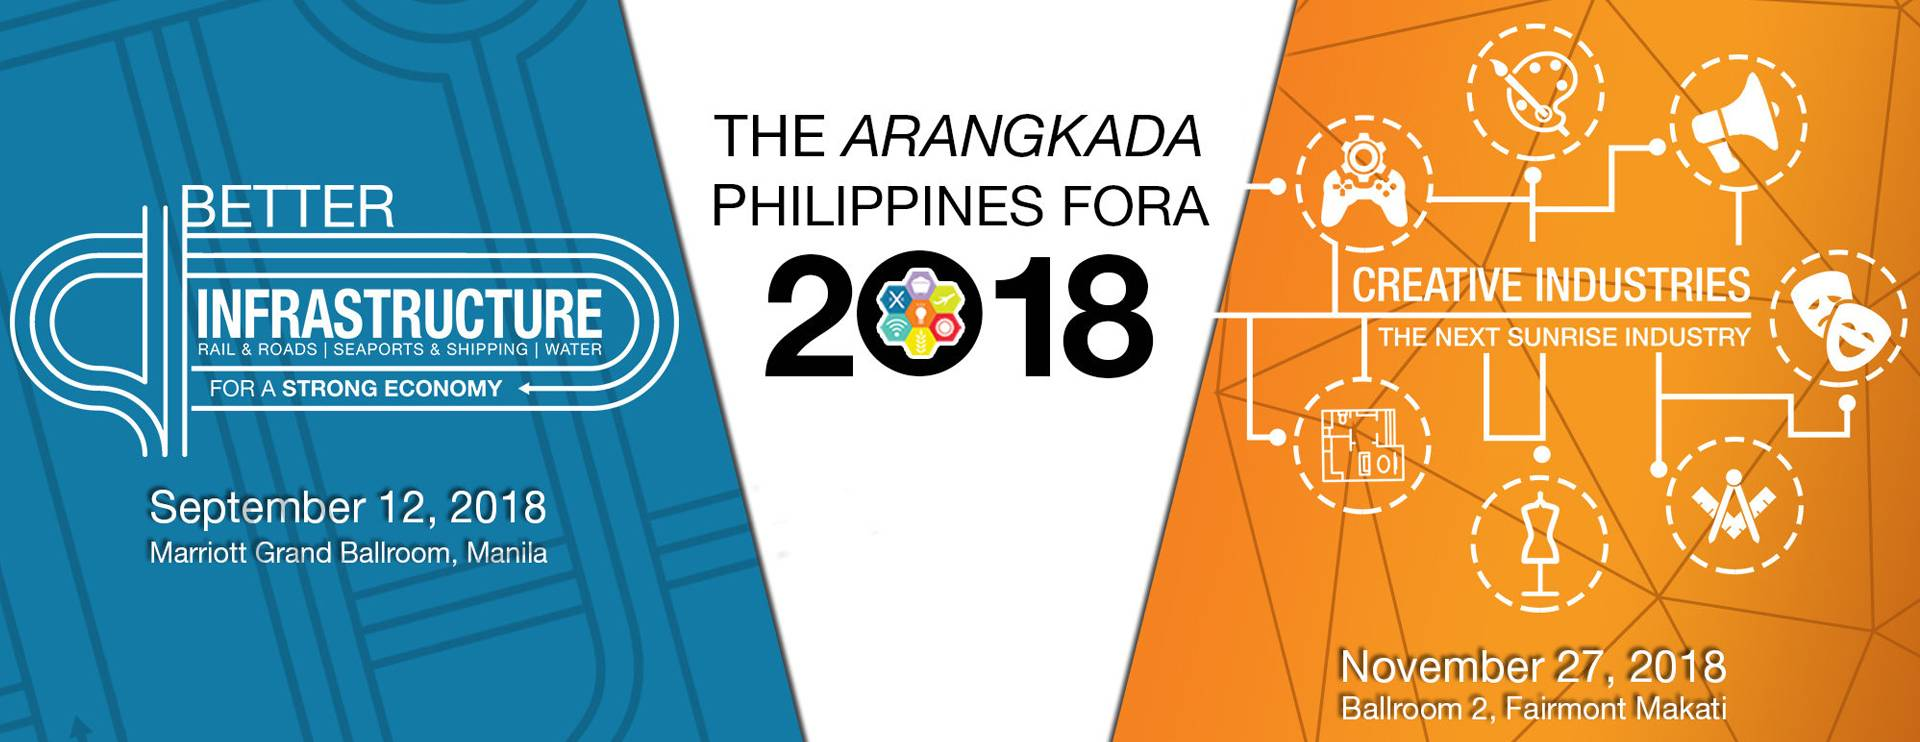 The Arangkada Fora 2018